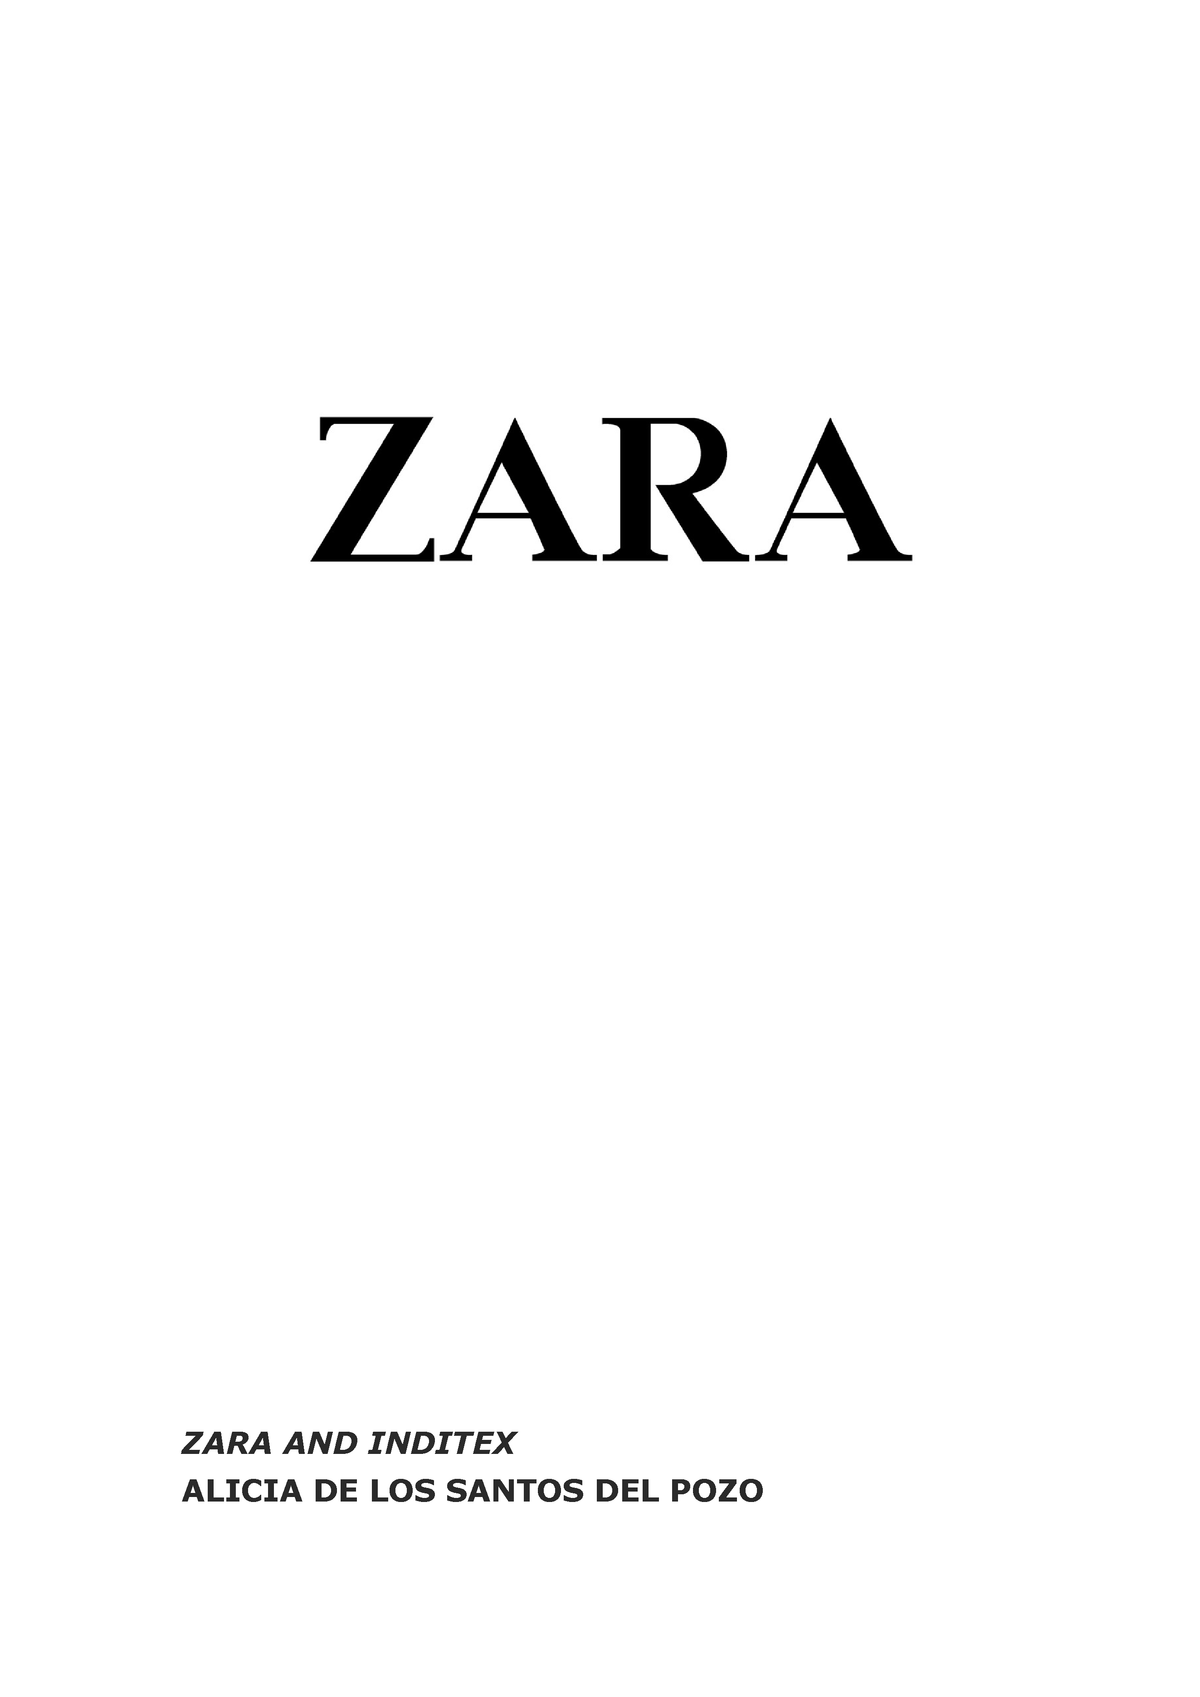 2628ada3 Caso 4 - Internationalization Strategy: Zara - 21139: International  Marketing I - StuDocu